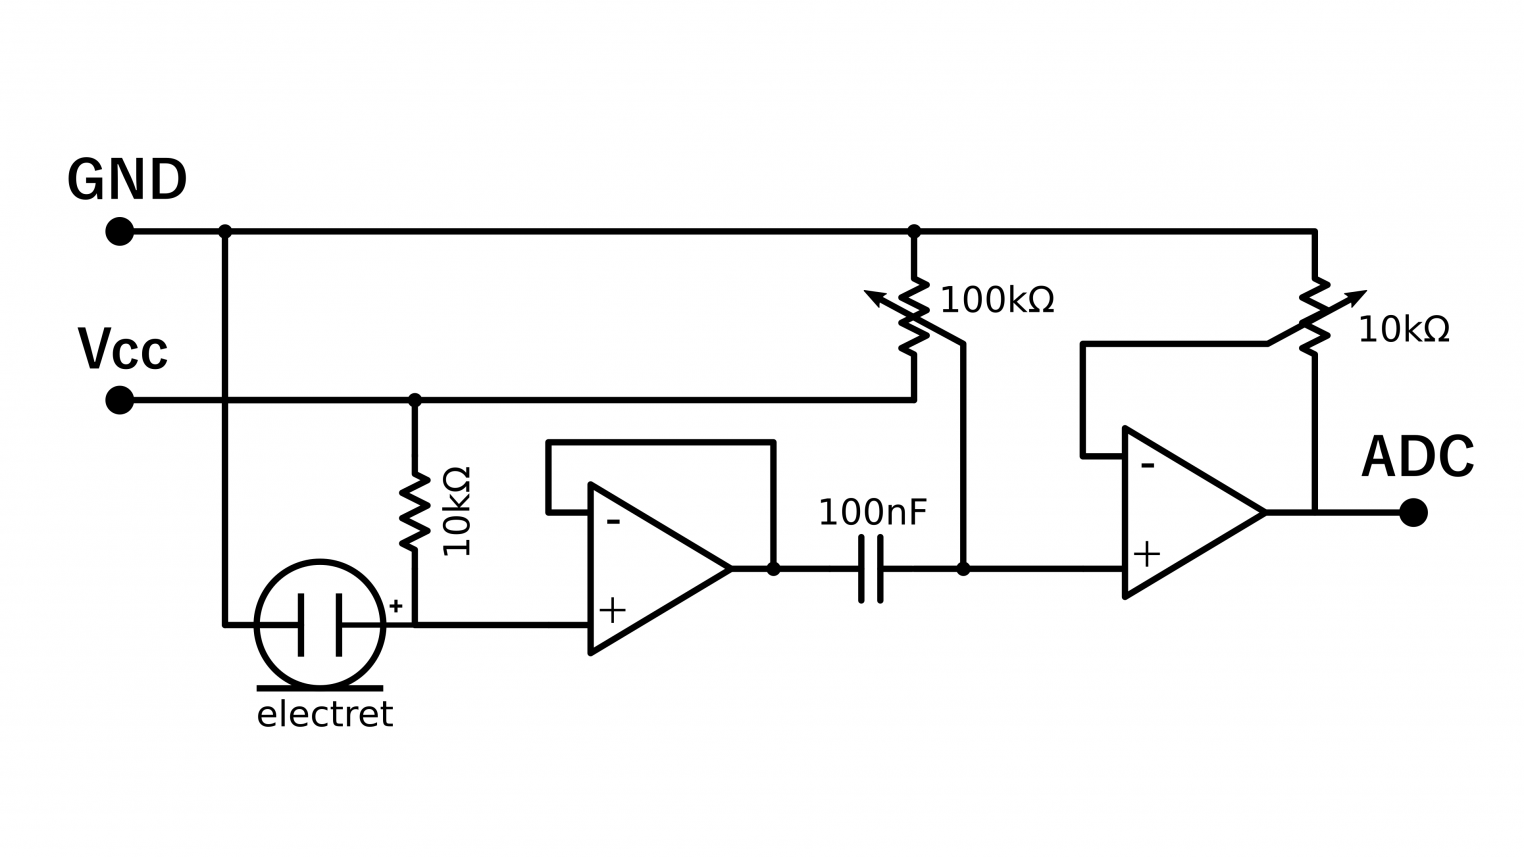 hight resolution of the circuit used in this project uses the dual op amp chip lm358 and a cheap electret capsule both op amp are utilized along two potentiometers and a few